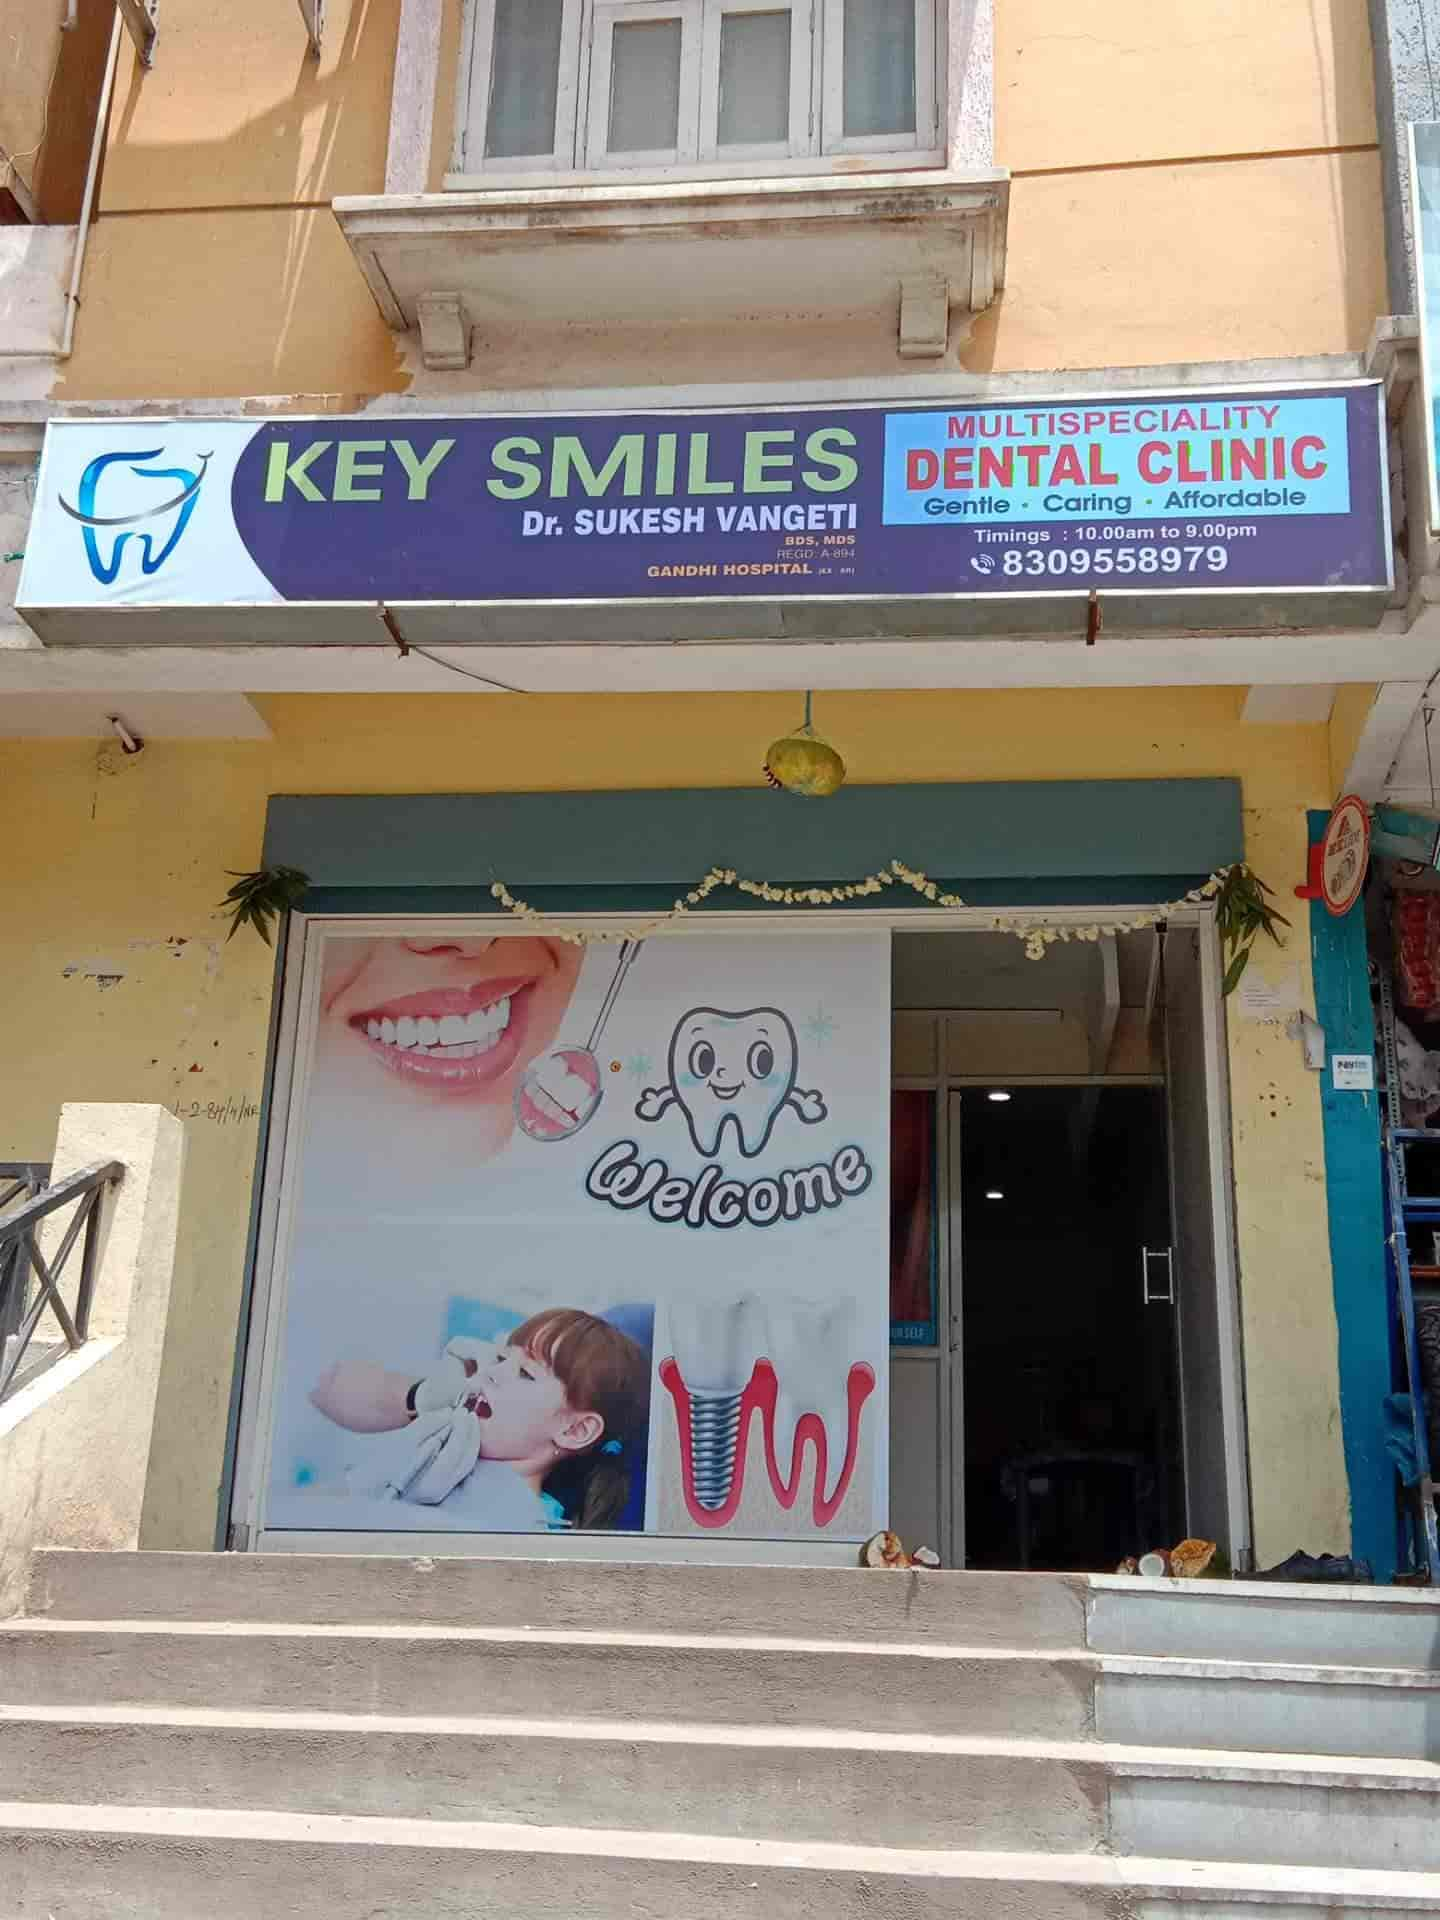 Key Smiles Multispeciality Dental Clinic Nagole Dentists In Ngk Whb Gandhi Hyderabad Justdial